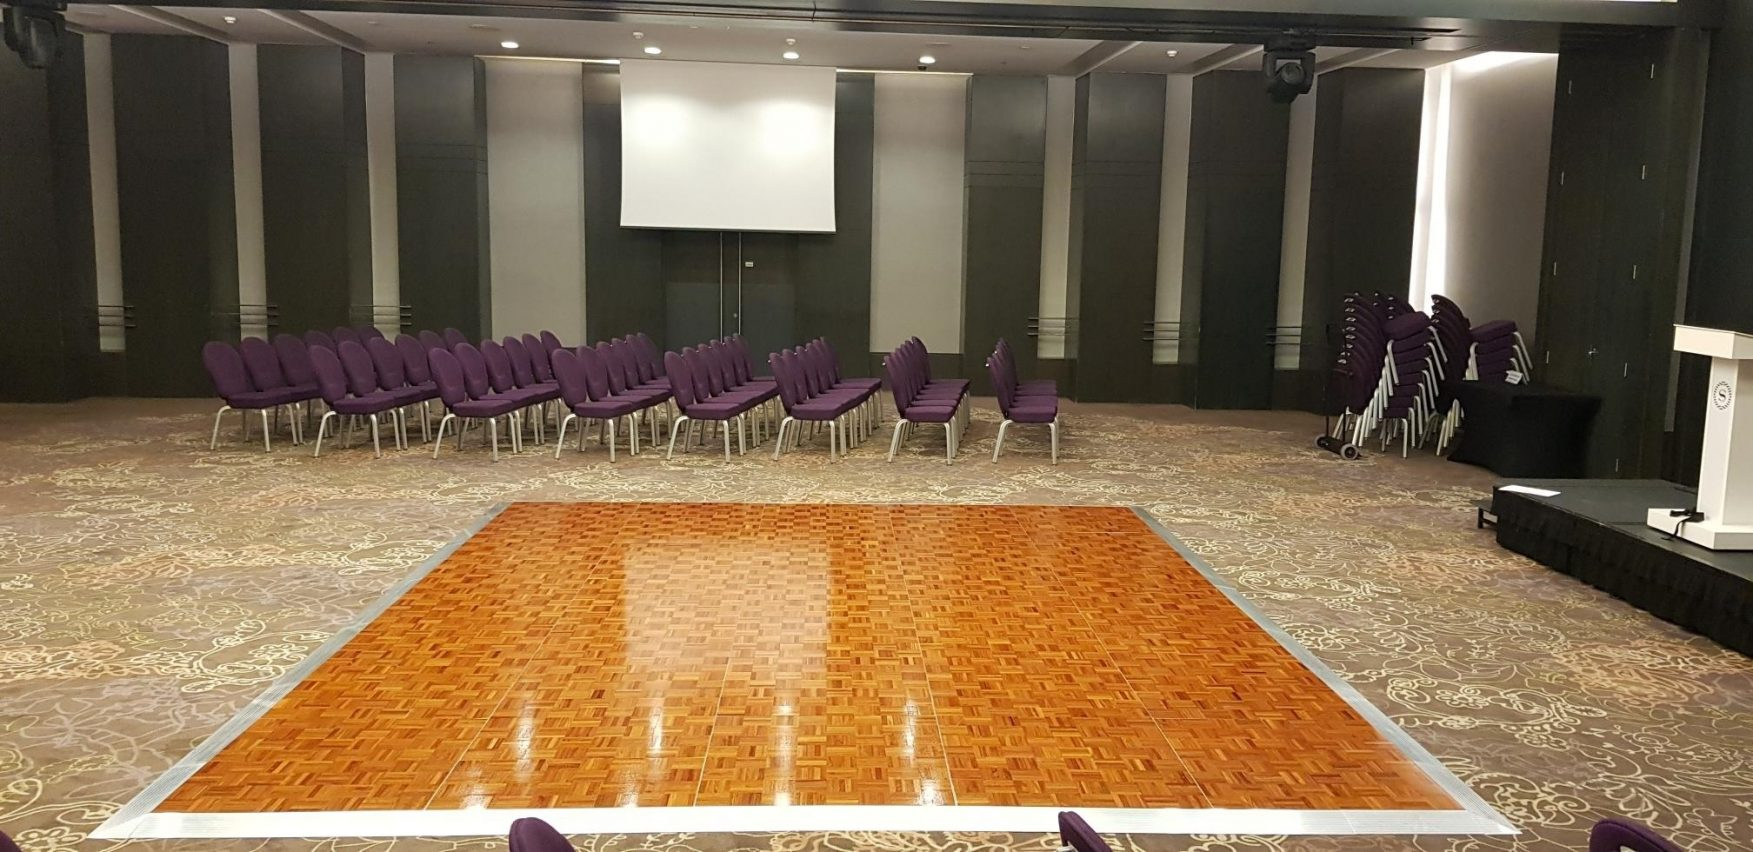 Florlok Jatoba Portable Dance Floor - Sheraton Grand Hotel